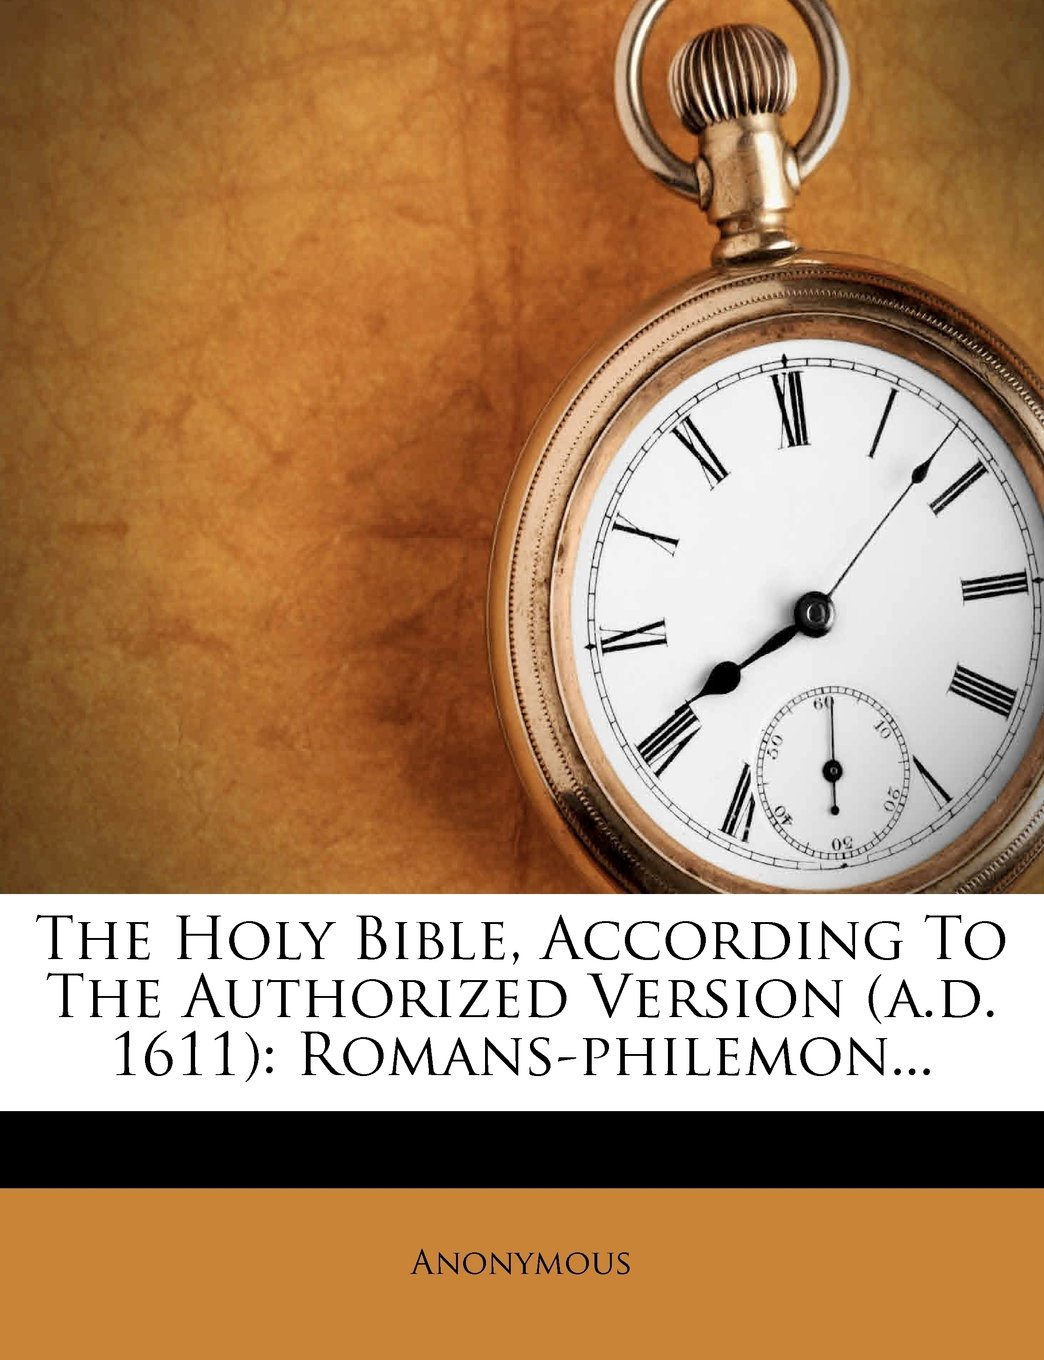 The Holy Bible, According To The Authorized Version (a.d. 1611): Romans-philemon... pdf